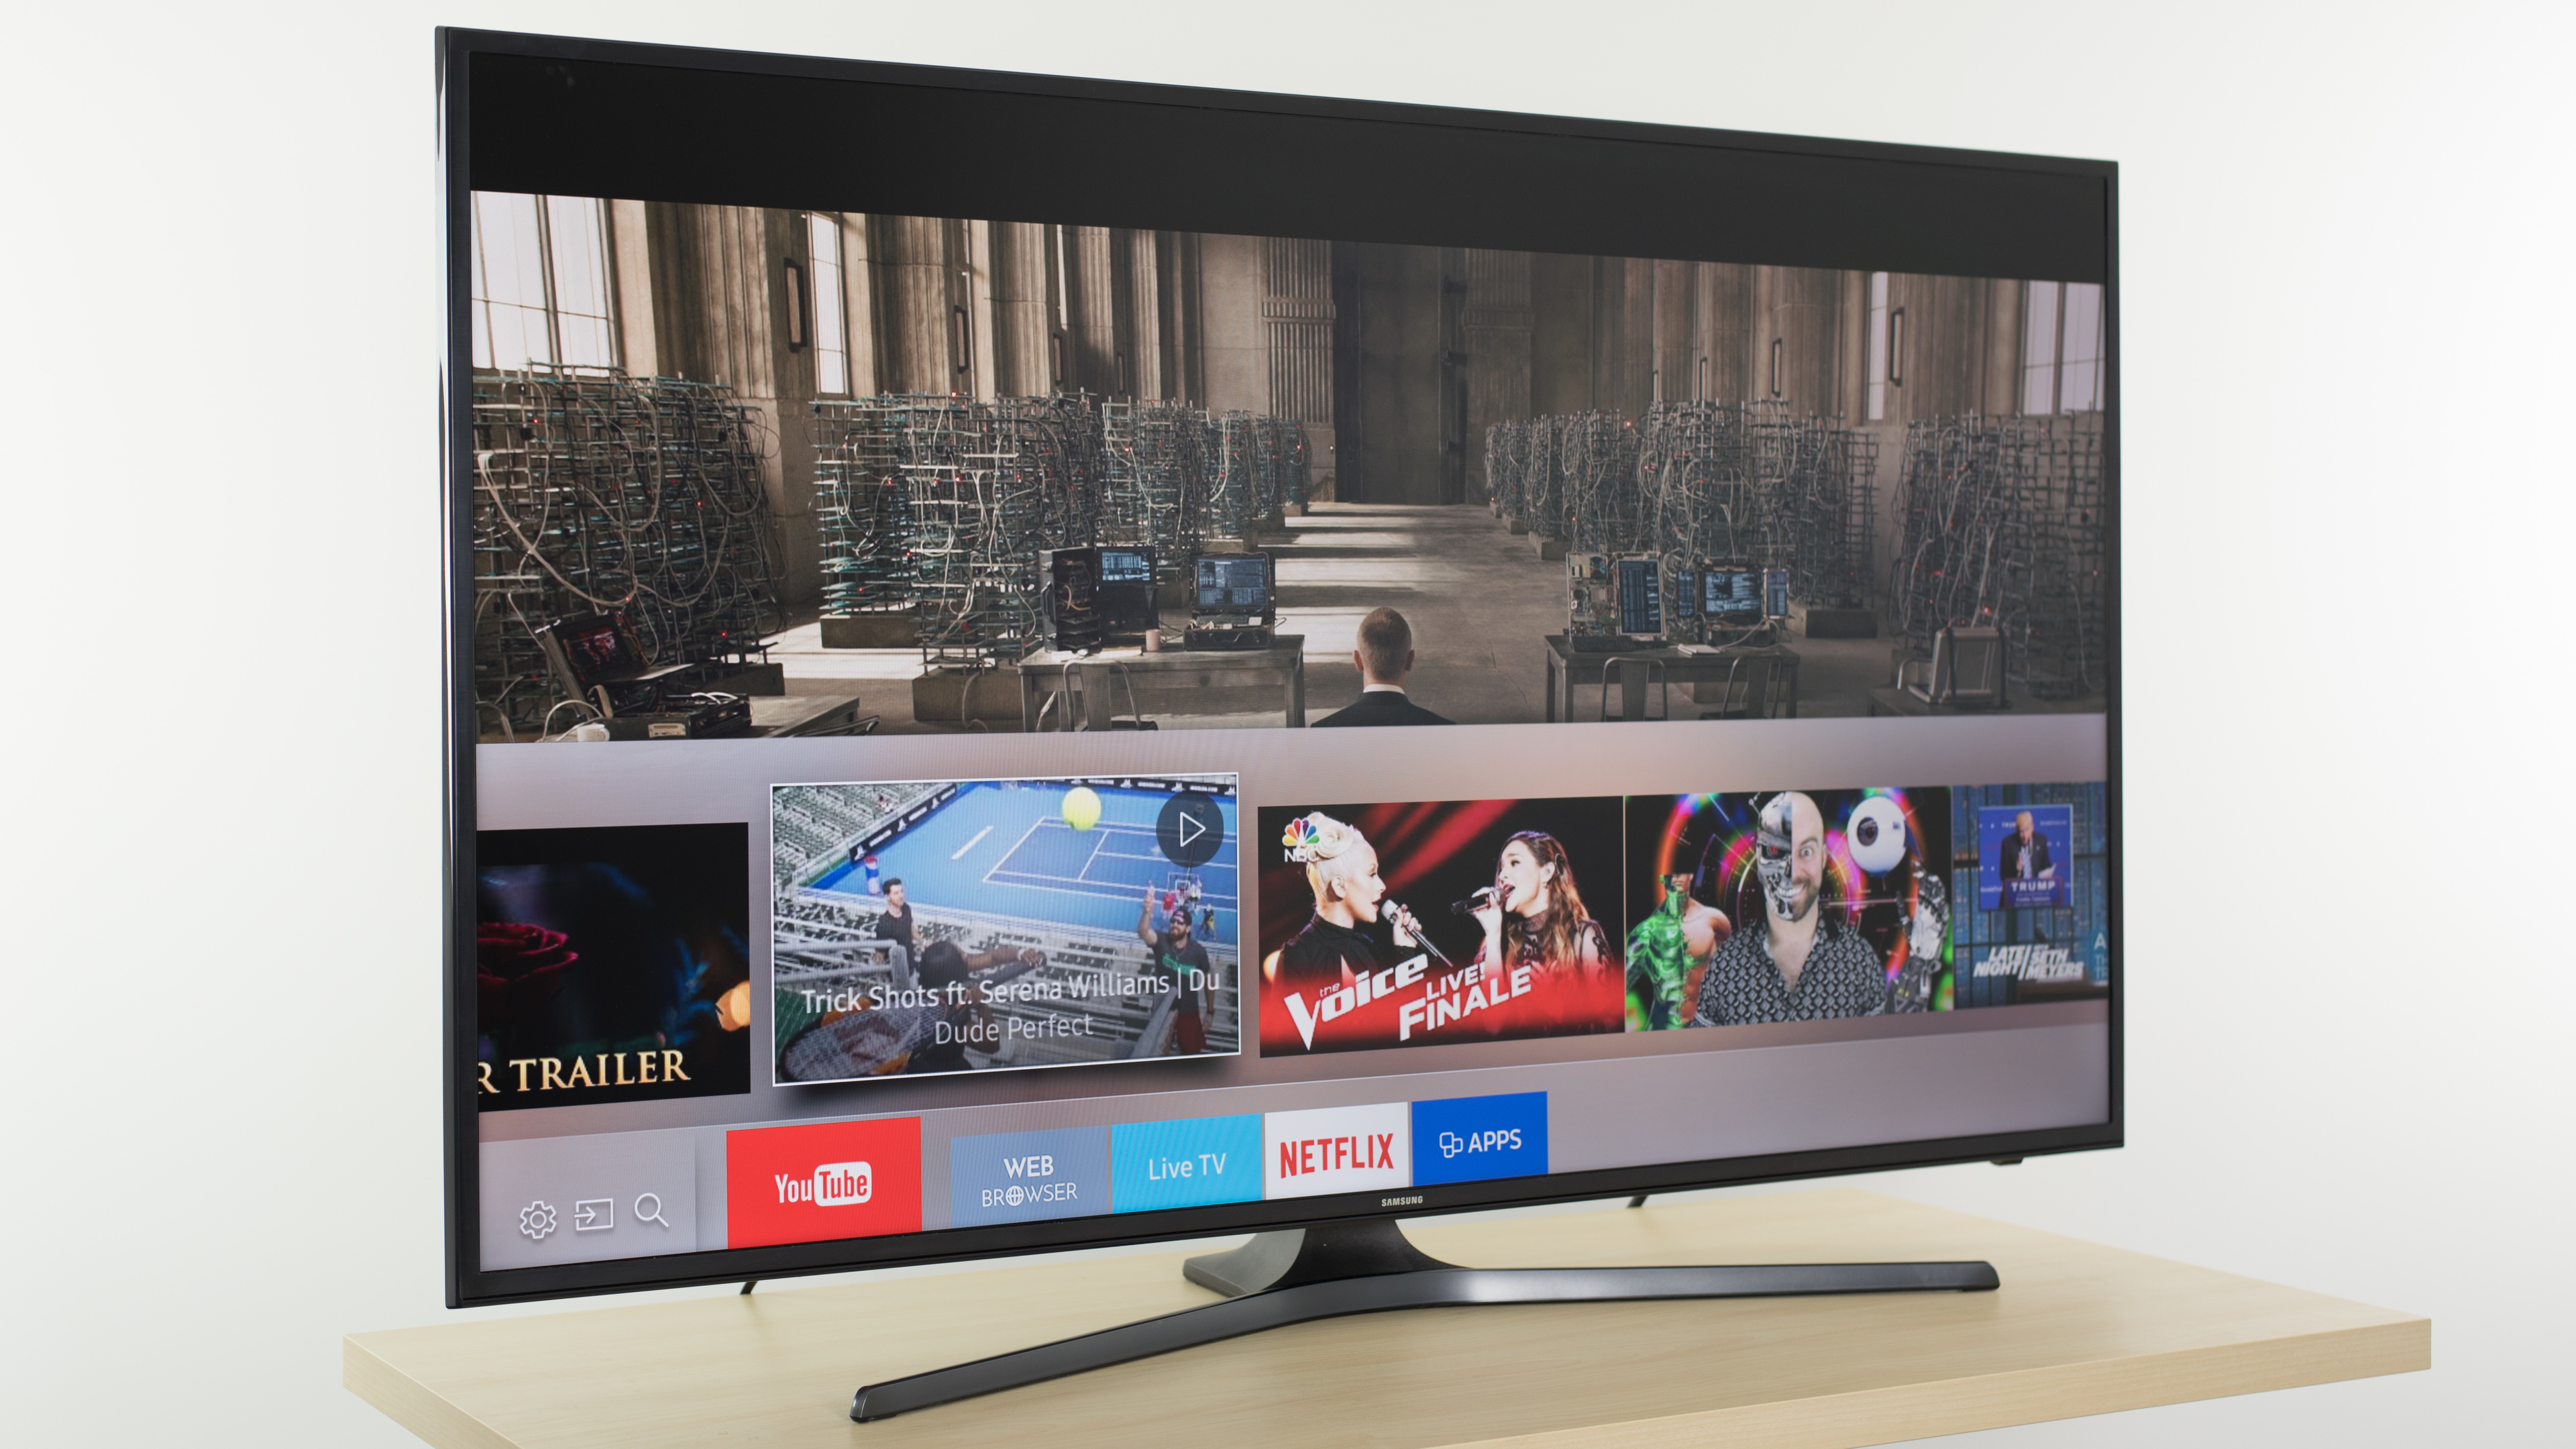 samsung tv reviews. samsung ku6300 review (un40ku6300, un43ku6300, un50ku6300, un55ku6300, un60ku6300, un65ku6300, un70ku6300) tv reviews 0